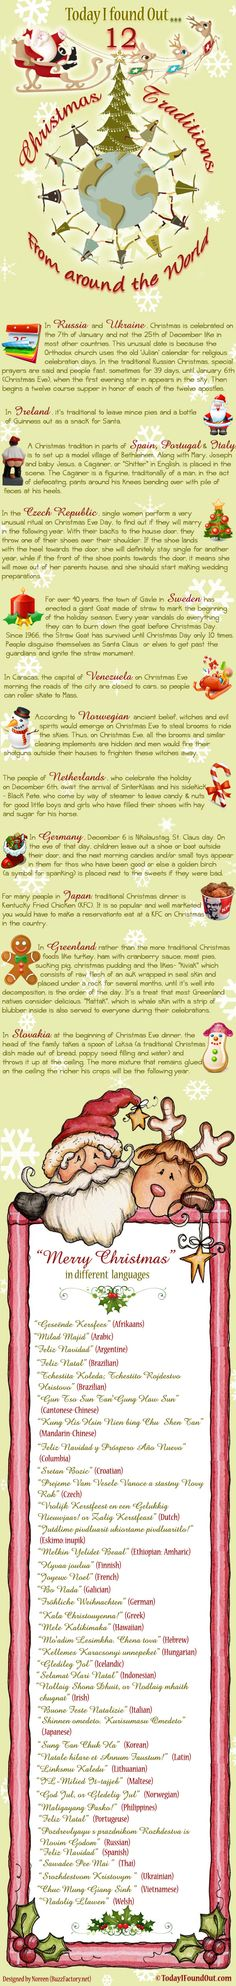 12 Christmas Traditions From Around The World #infographic